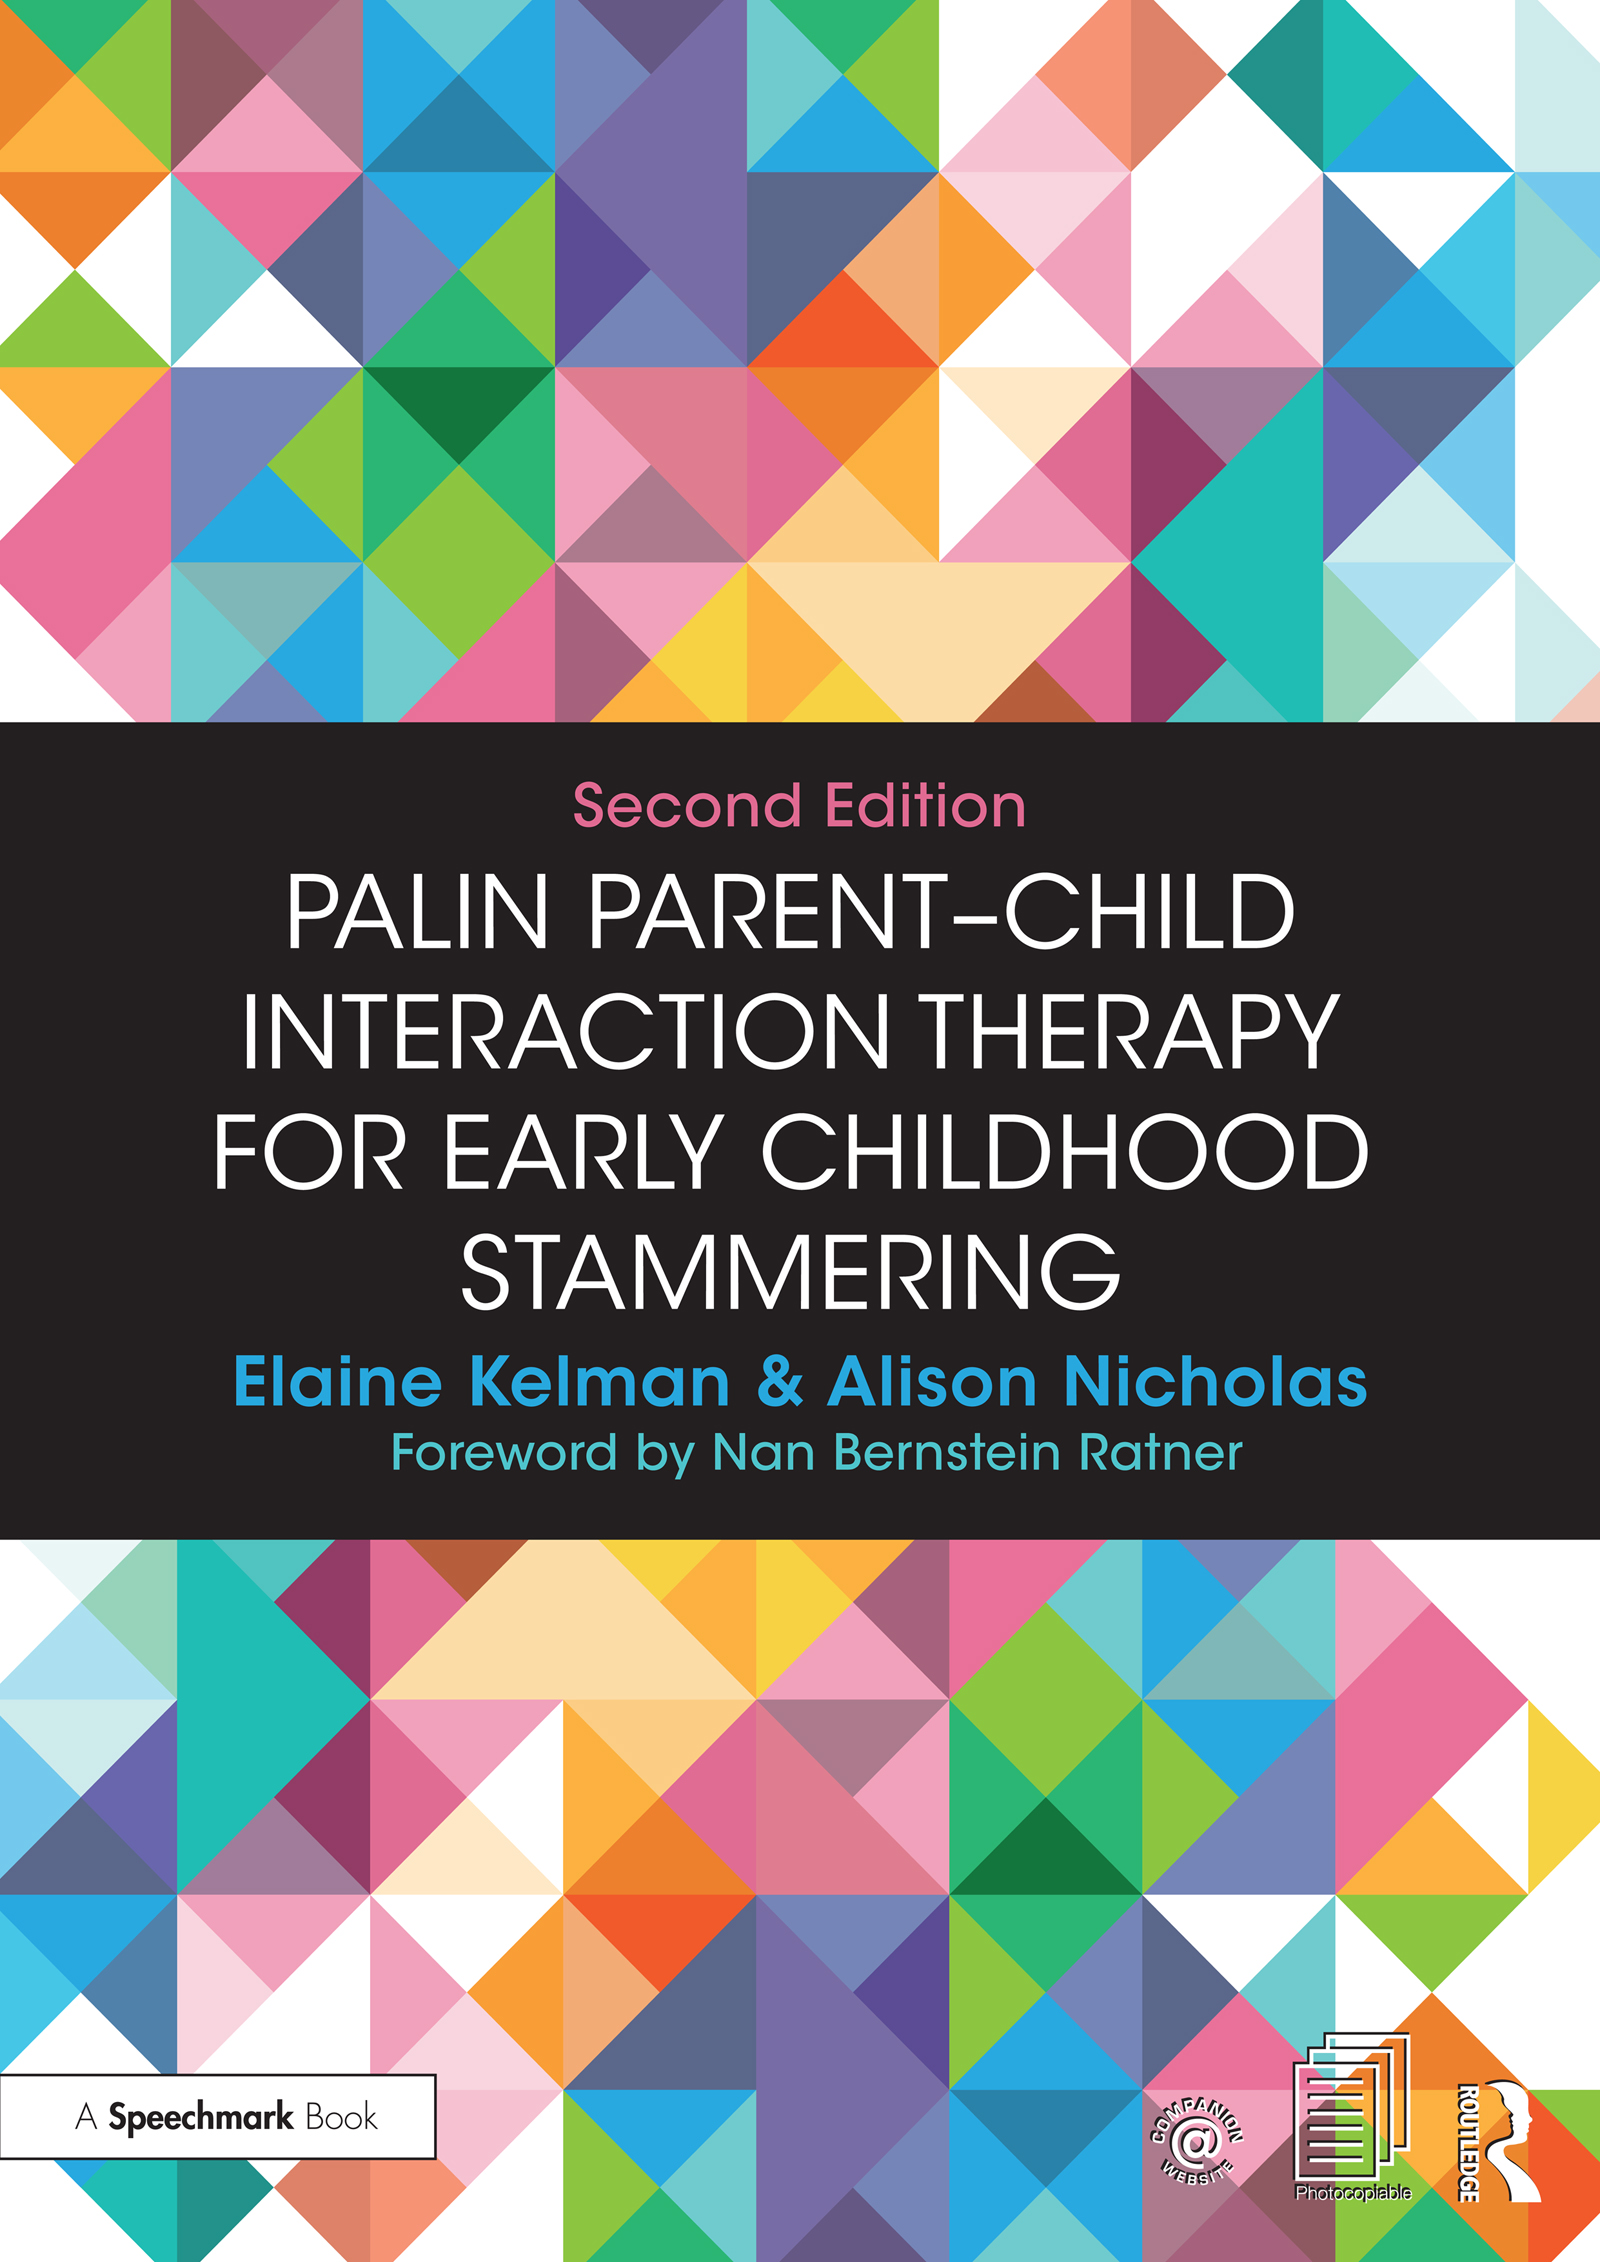 Palin Parent-Child Interaction Therapy for Early Childhood Stammering book cover